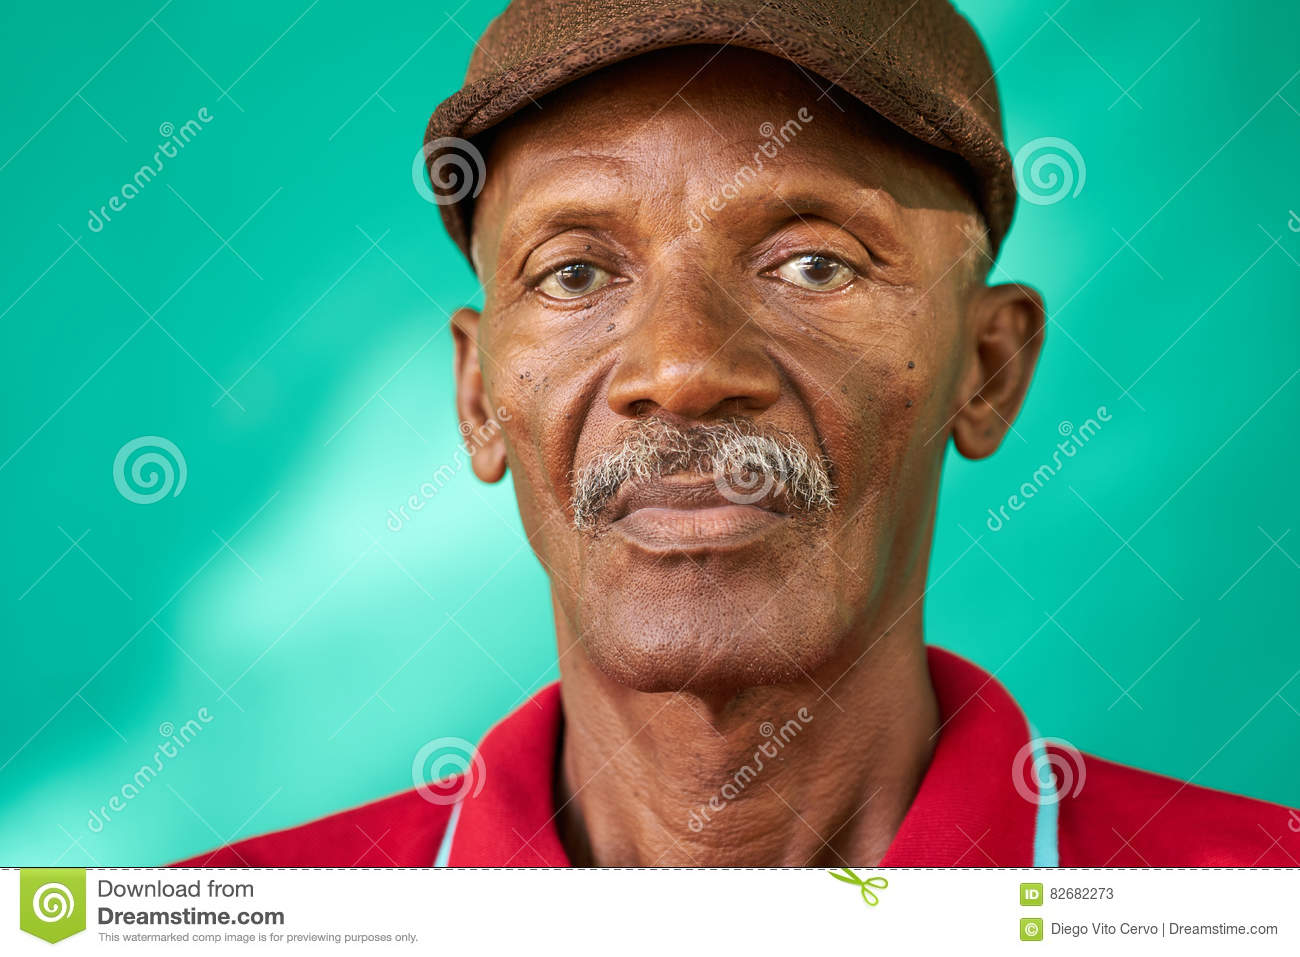 Pictures of old black people